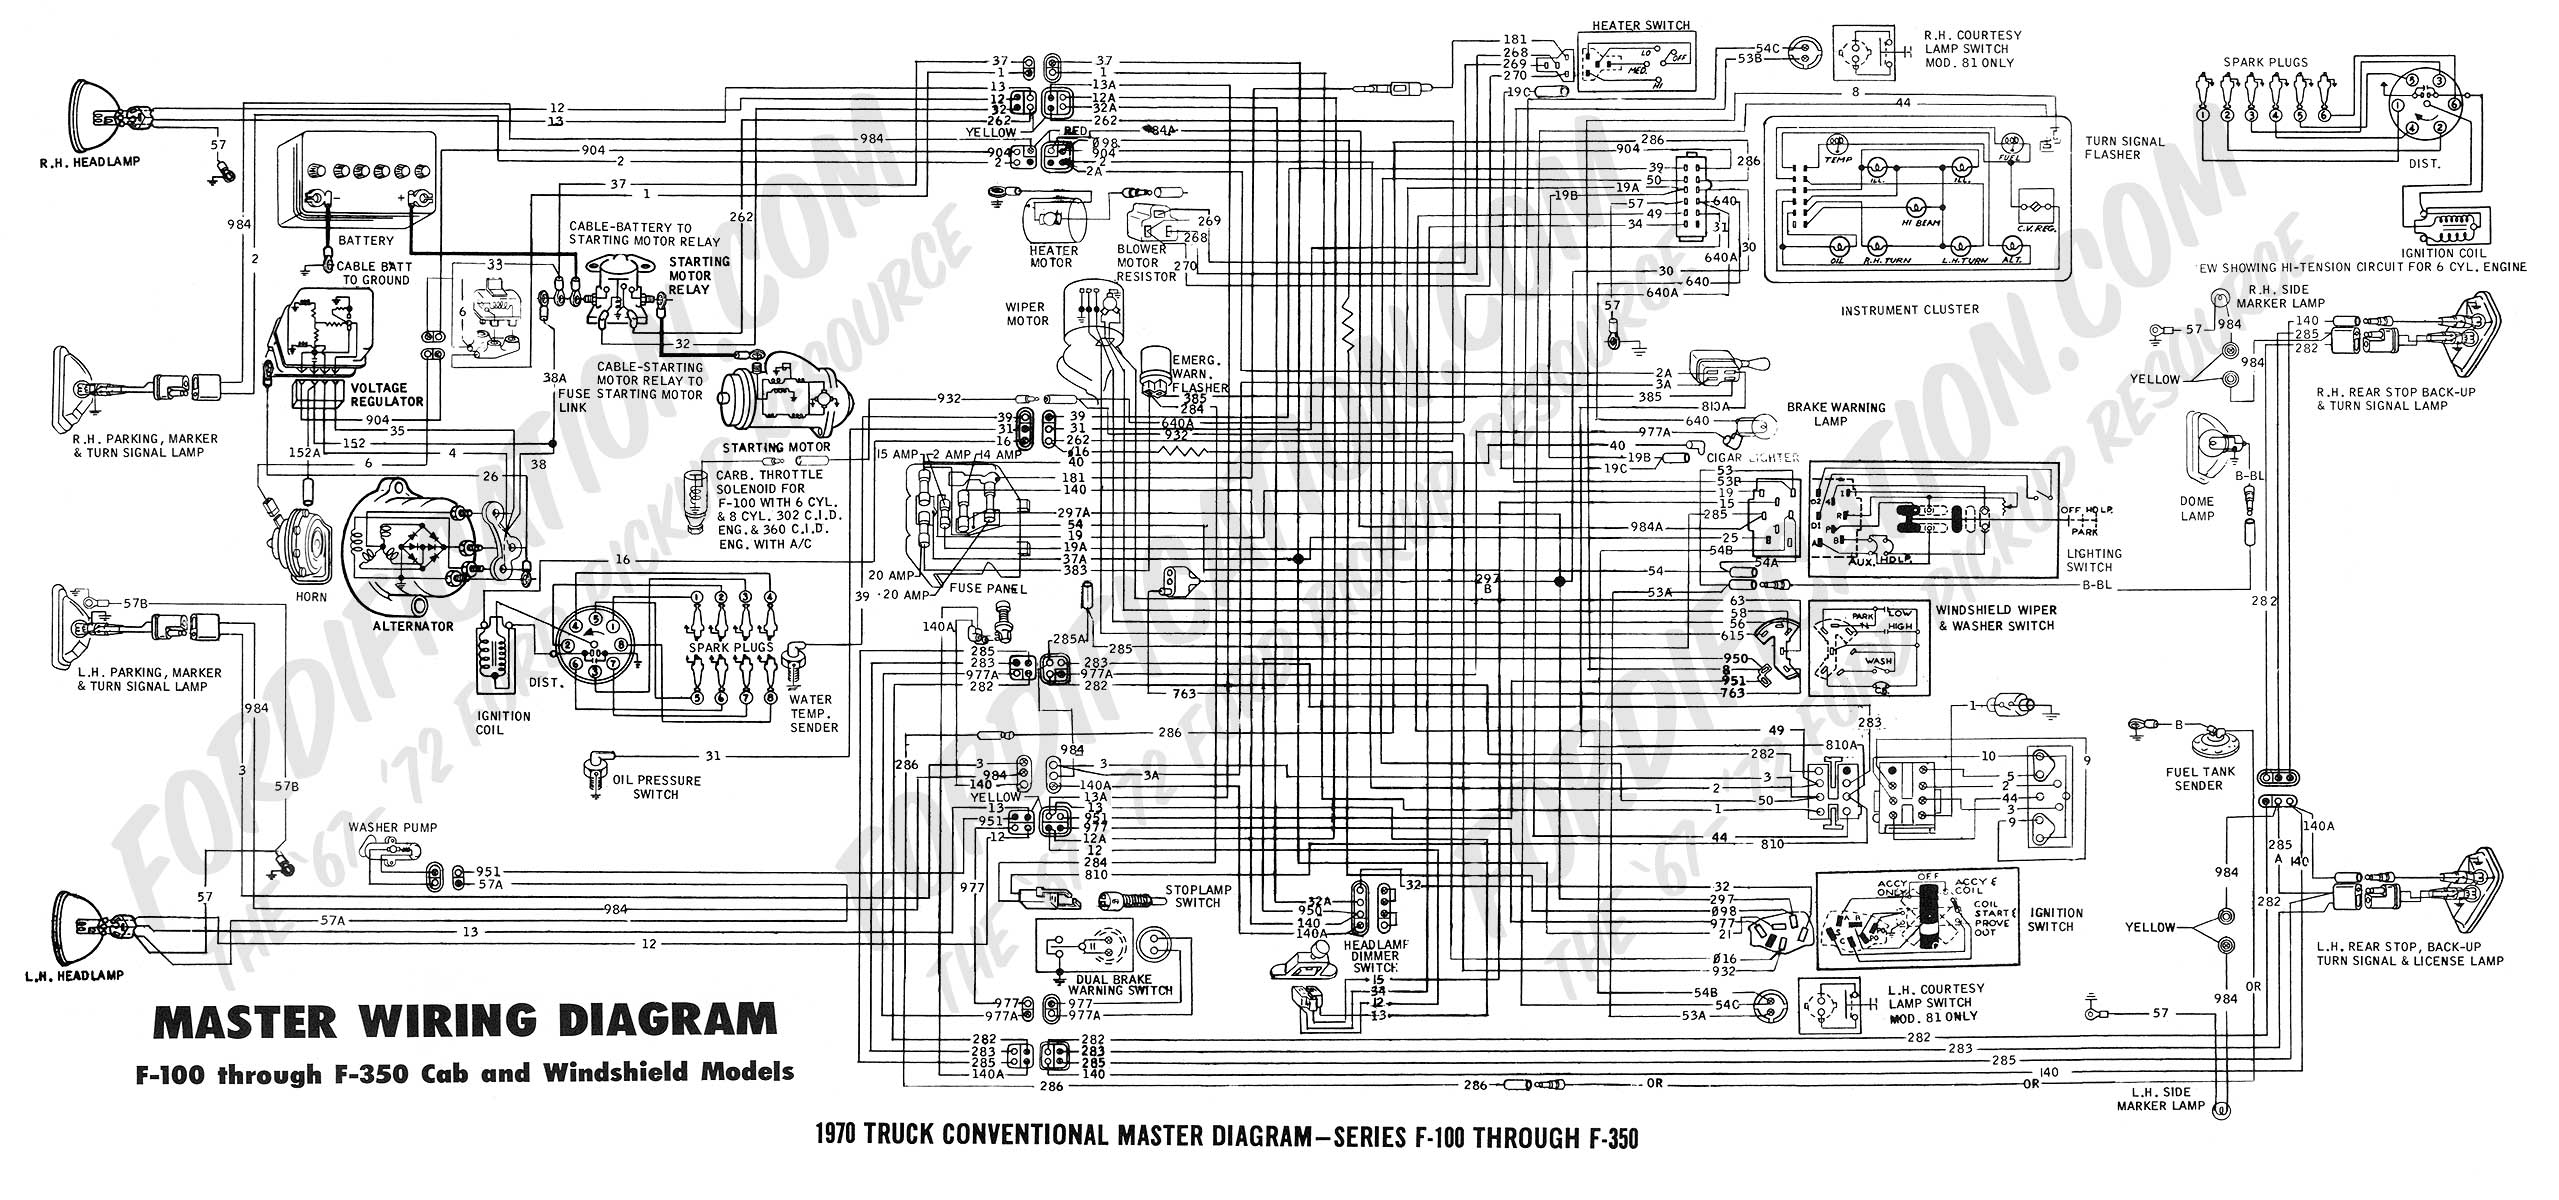 1982 Mustang Fuse Box Location furthermore Mustang Wiring Diagrams further Wiring together with 310715418252 besides 1965 Mustang Wiring Diagrams. on 1968 mercury cougar instrument panel wiring diagram